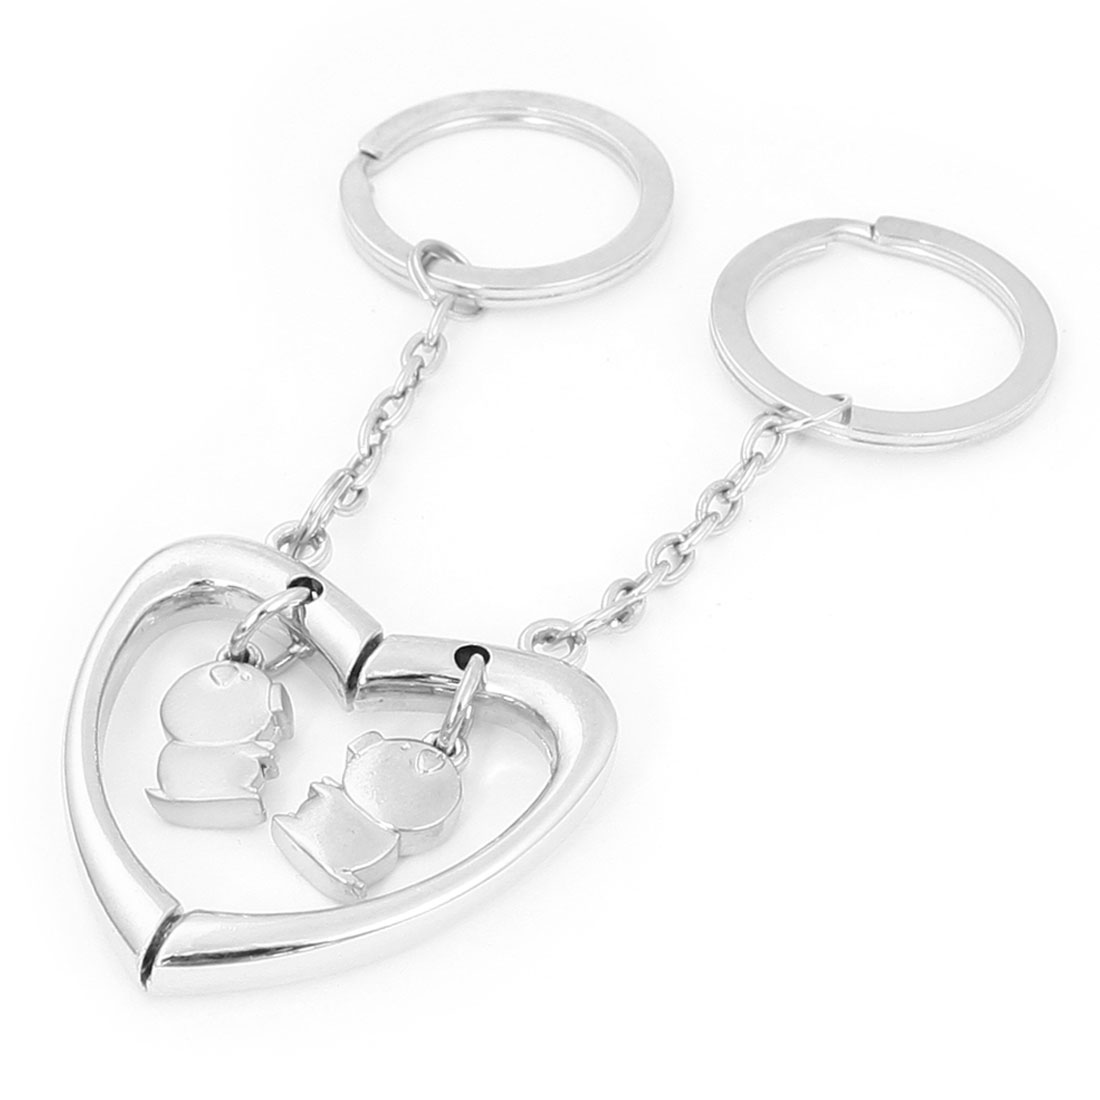 Pair Lovers Silver Tone Metal Heart Pig Dangling Split Key Keychain